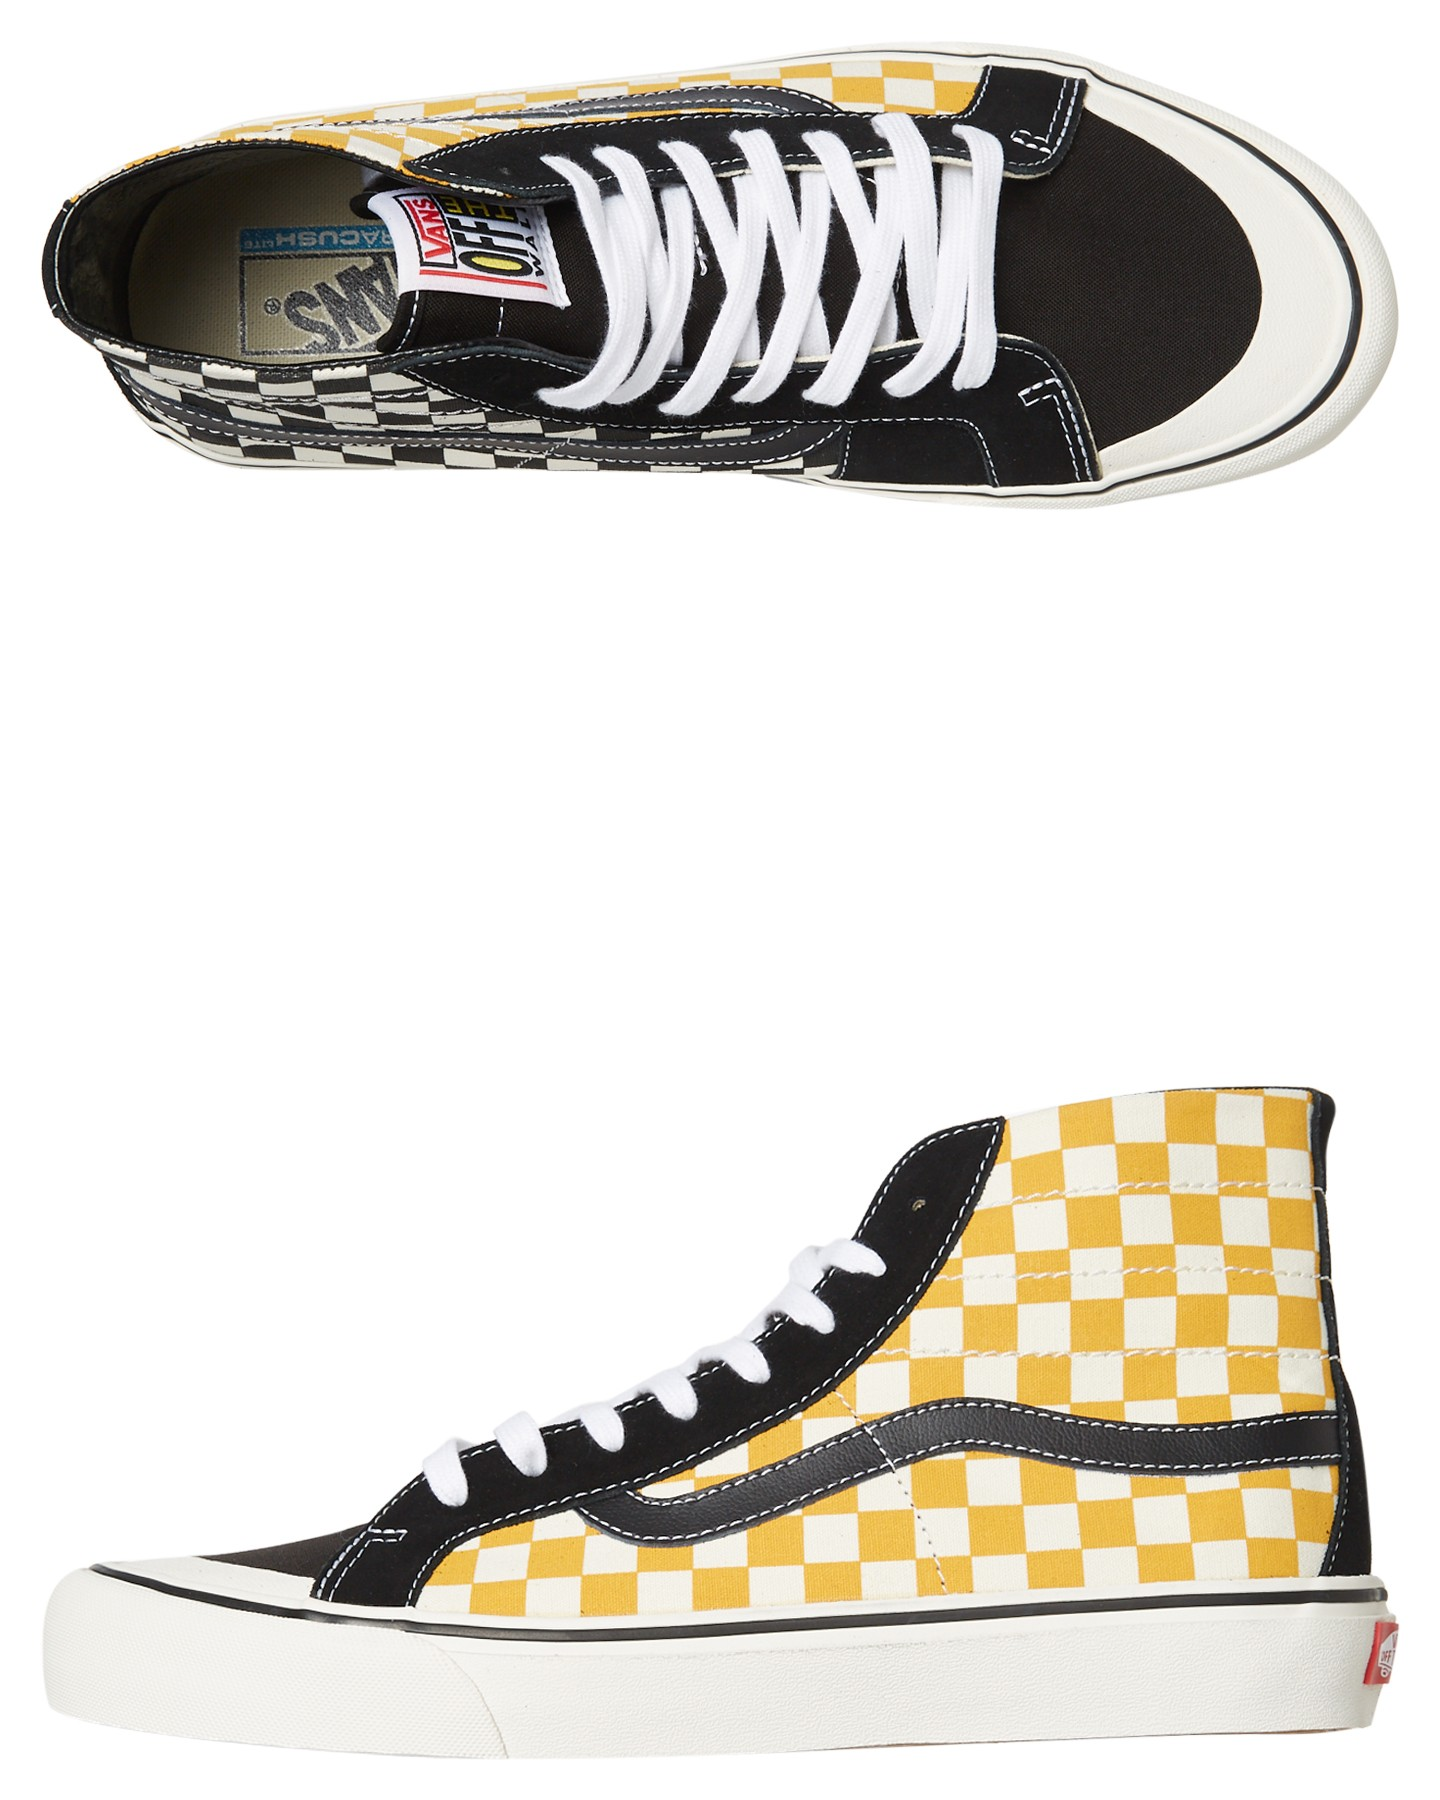 acc69baf5b Black Sunflower Coloured Sk8 Hi 138 Decon Sf Surf Check Shoe Black  Sunflower By VANS